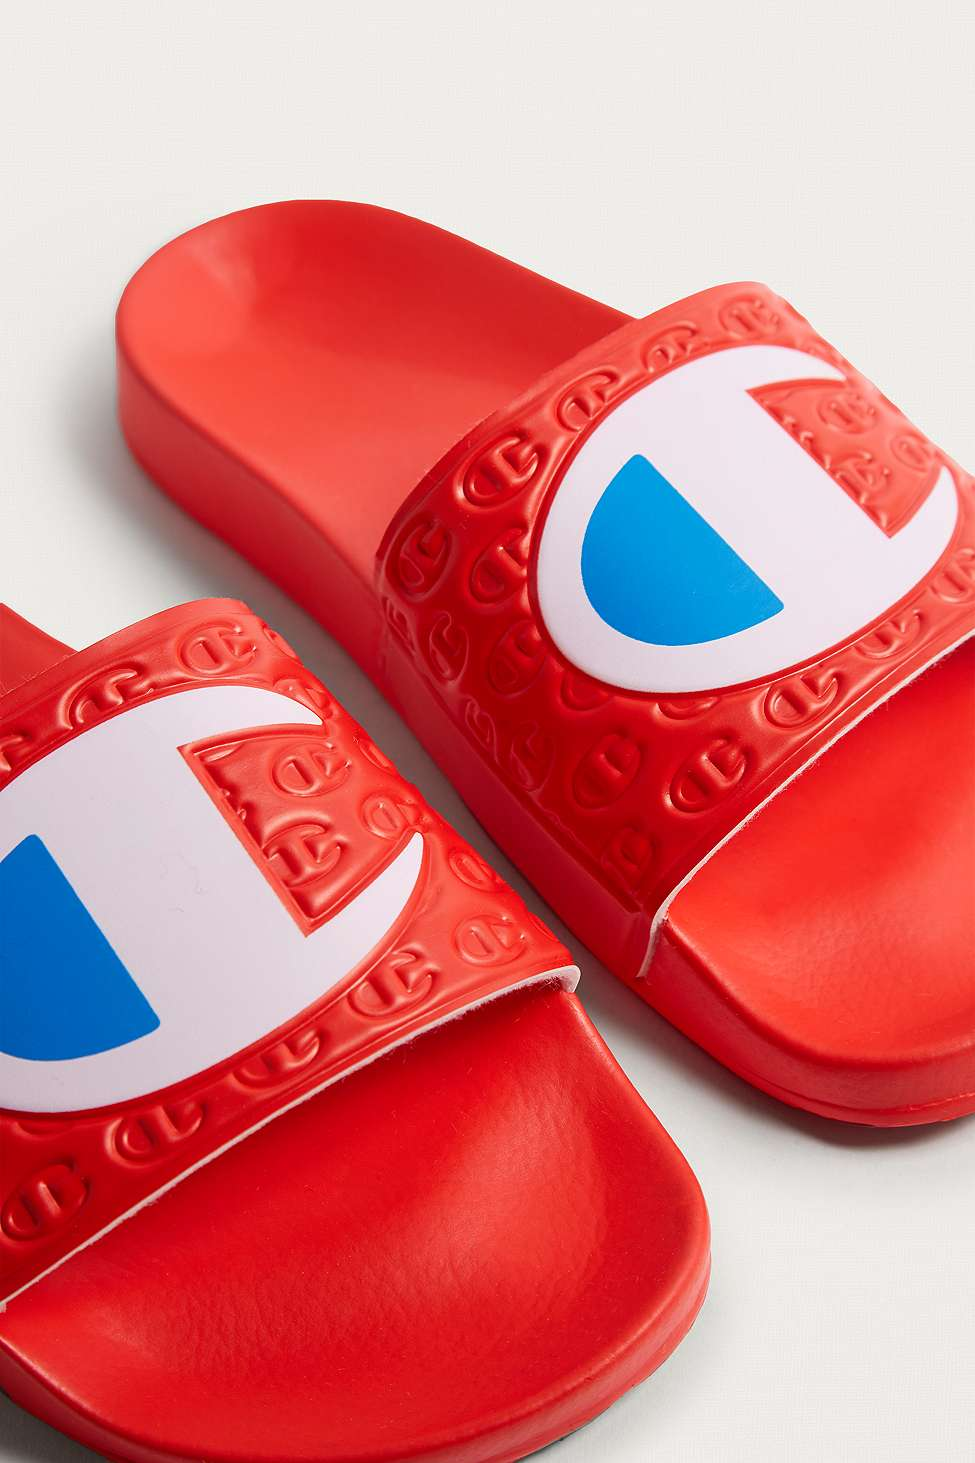 Slide View: 3: Champion Red Pool Sliders